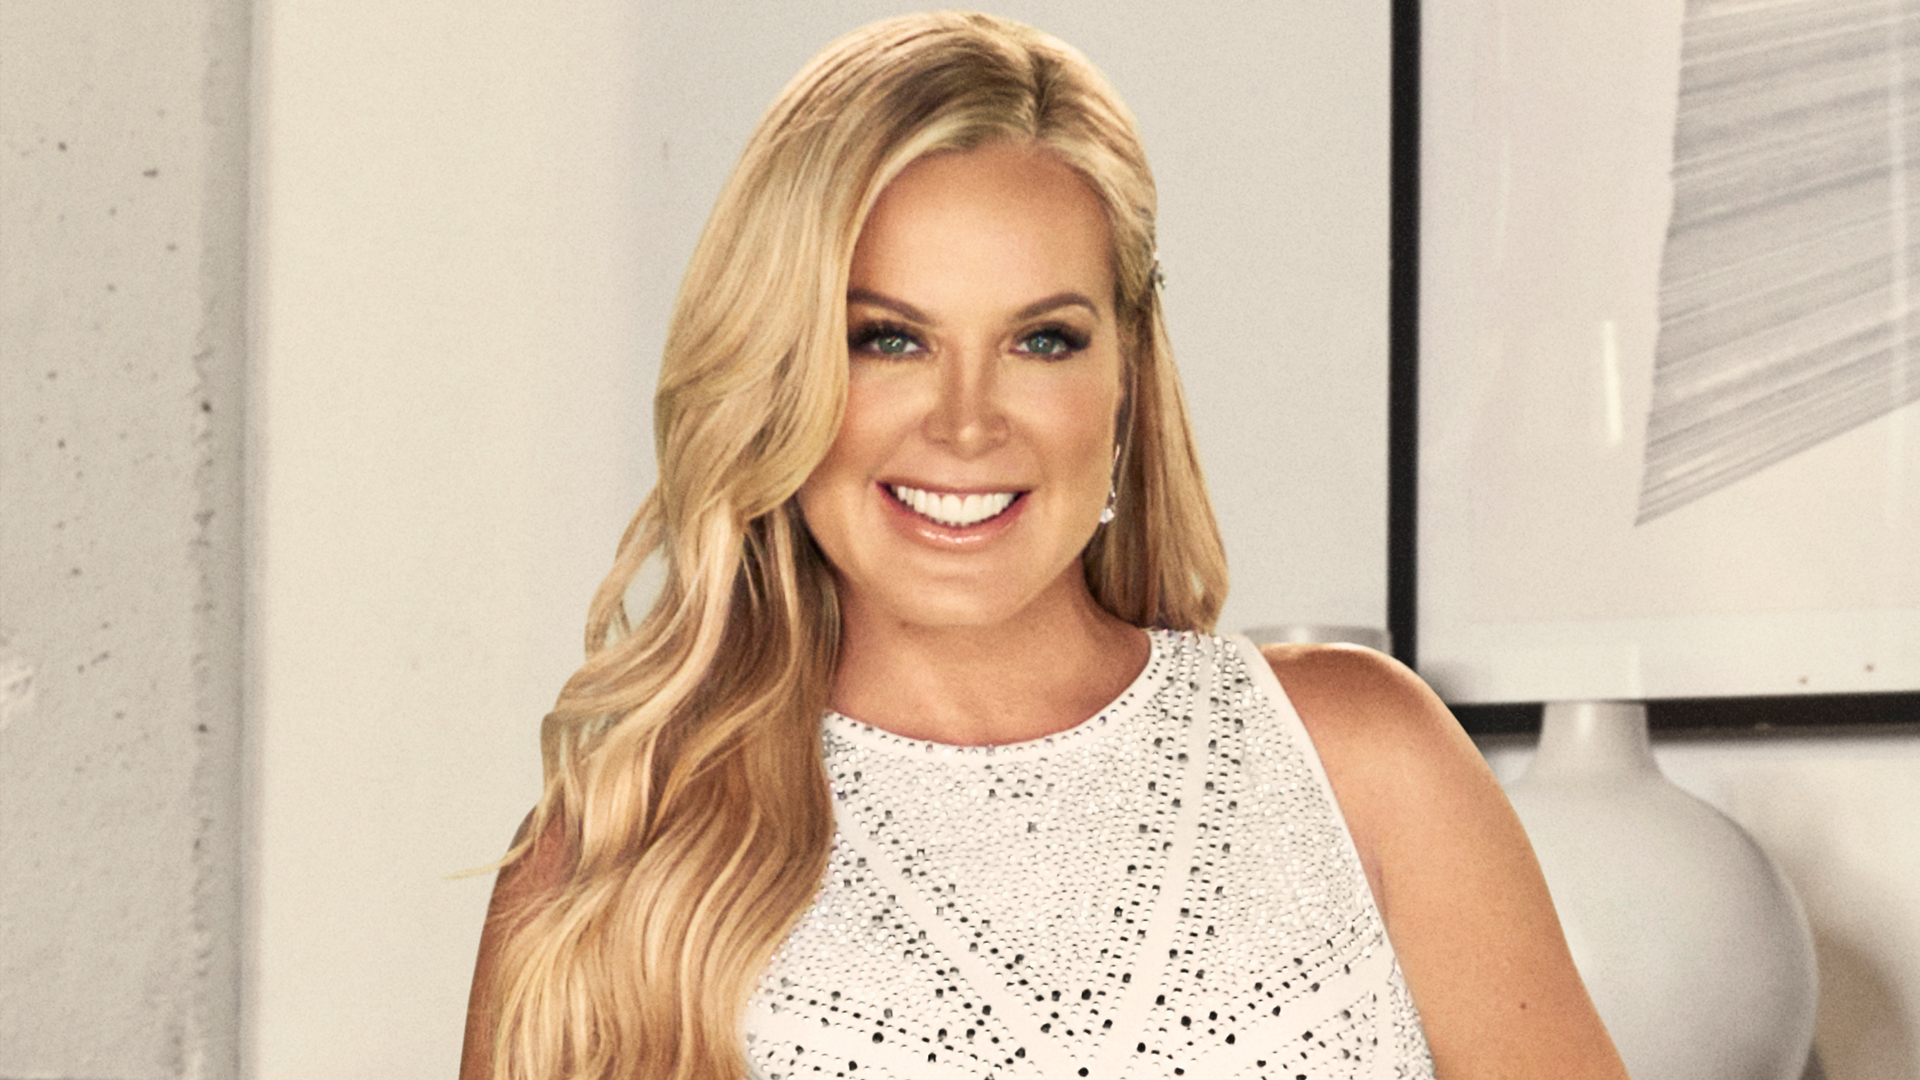 Rhoc Season 15 Announcement Who Is Emily Vargas